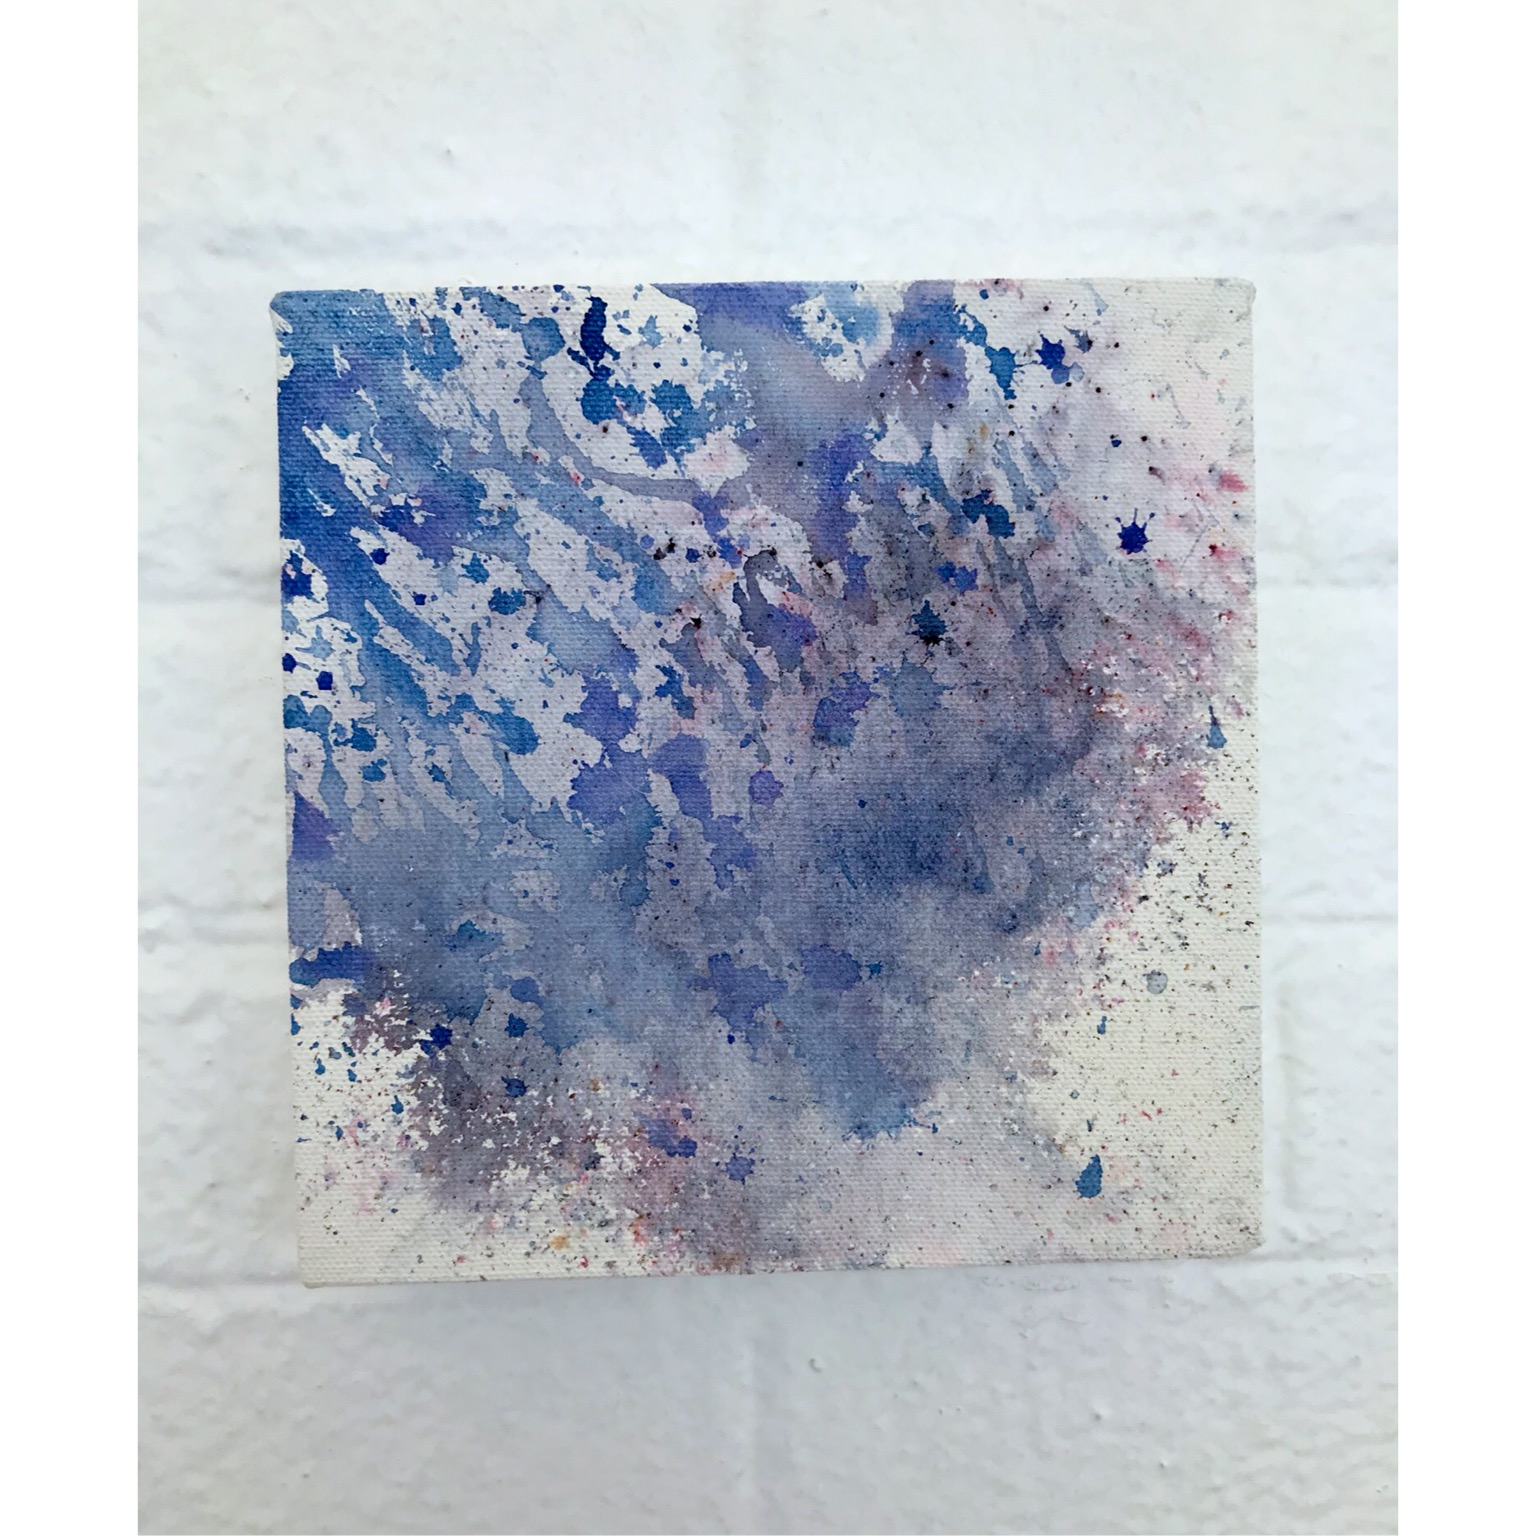 small 7x7 inch painting 1